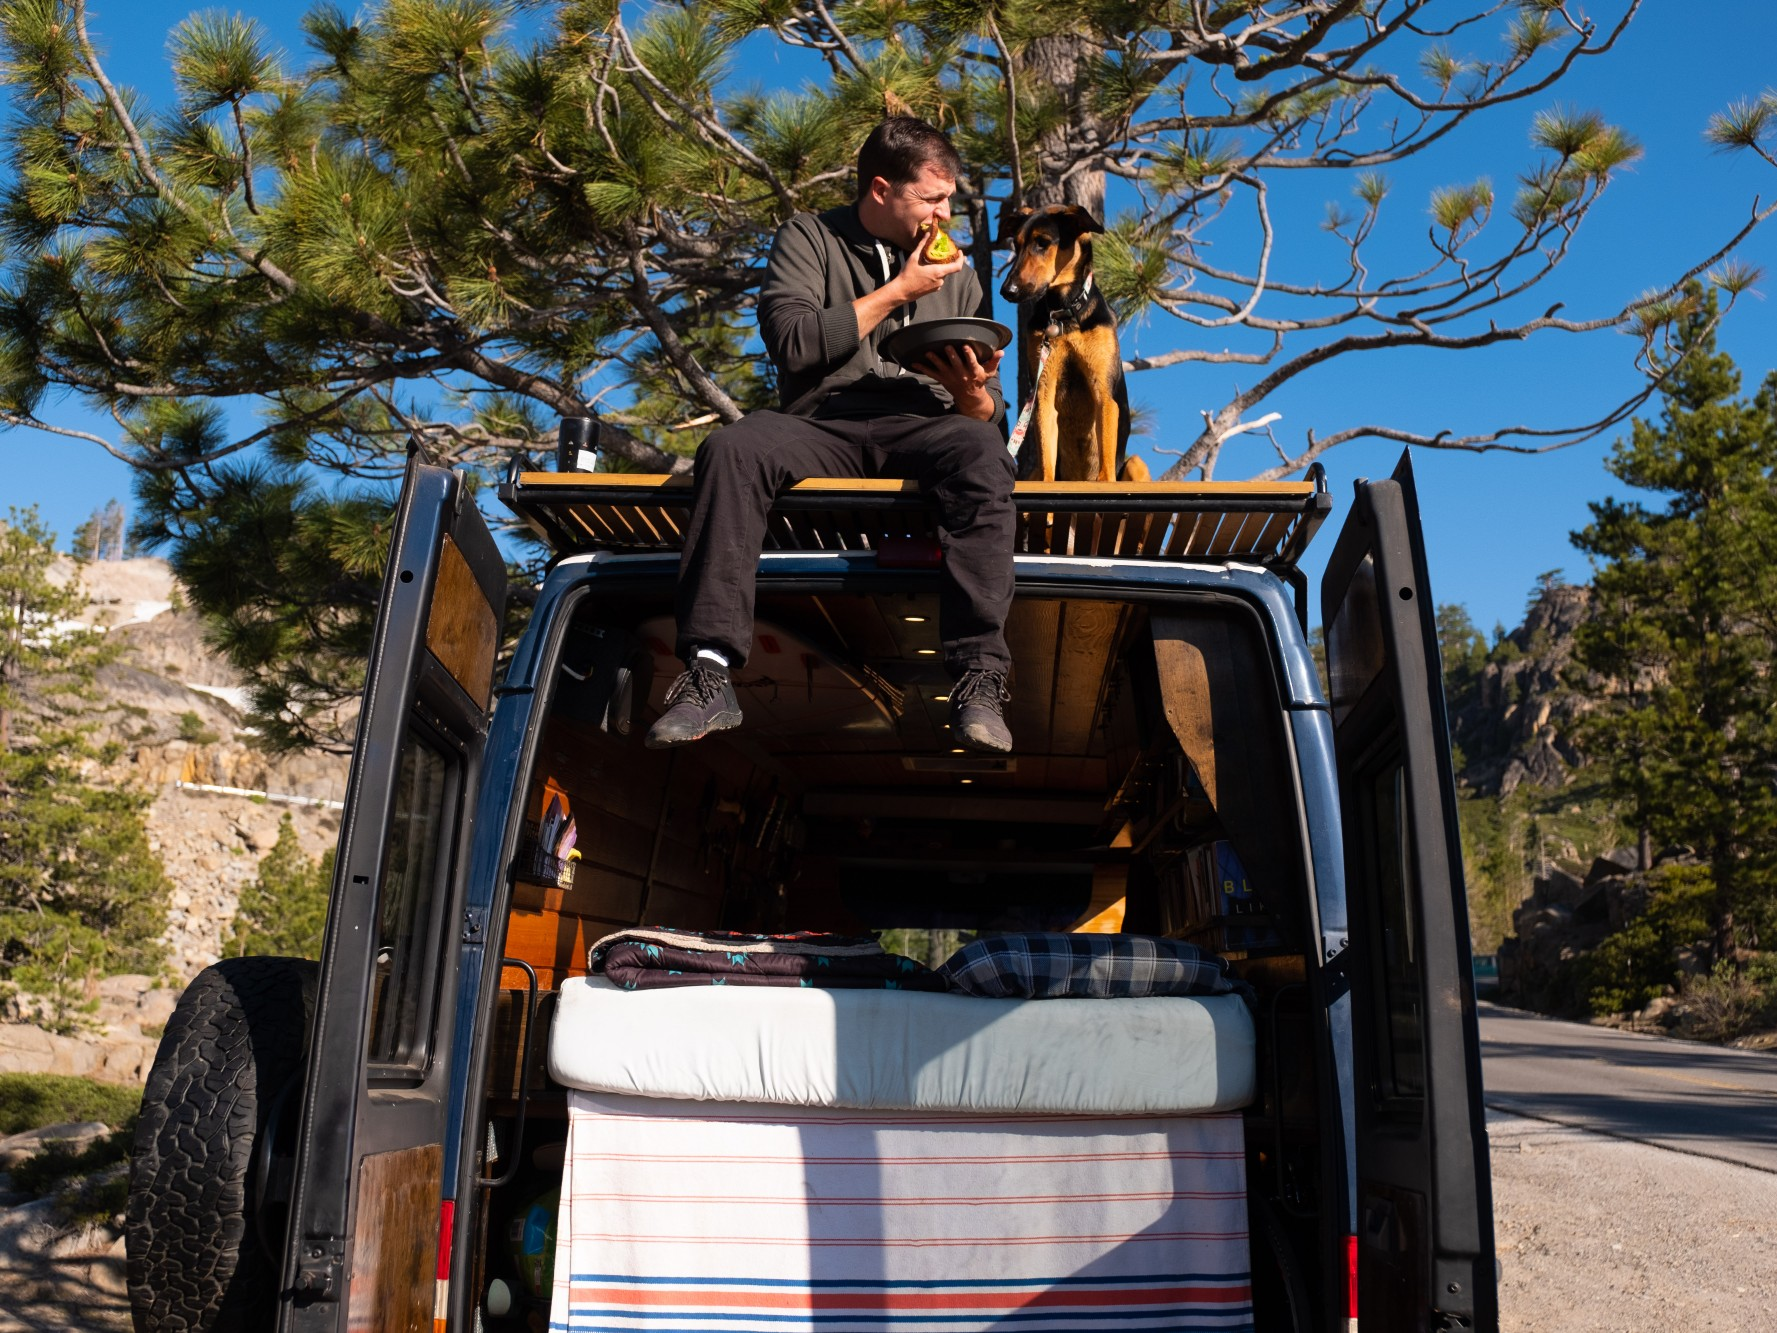 Dream Big, Live Small: Why The Van Life Is Taking Hold In